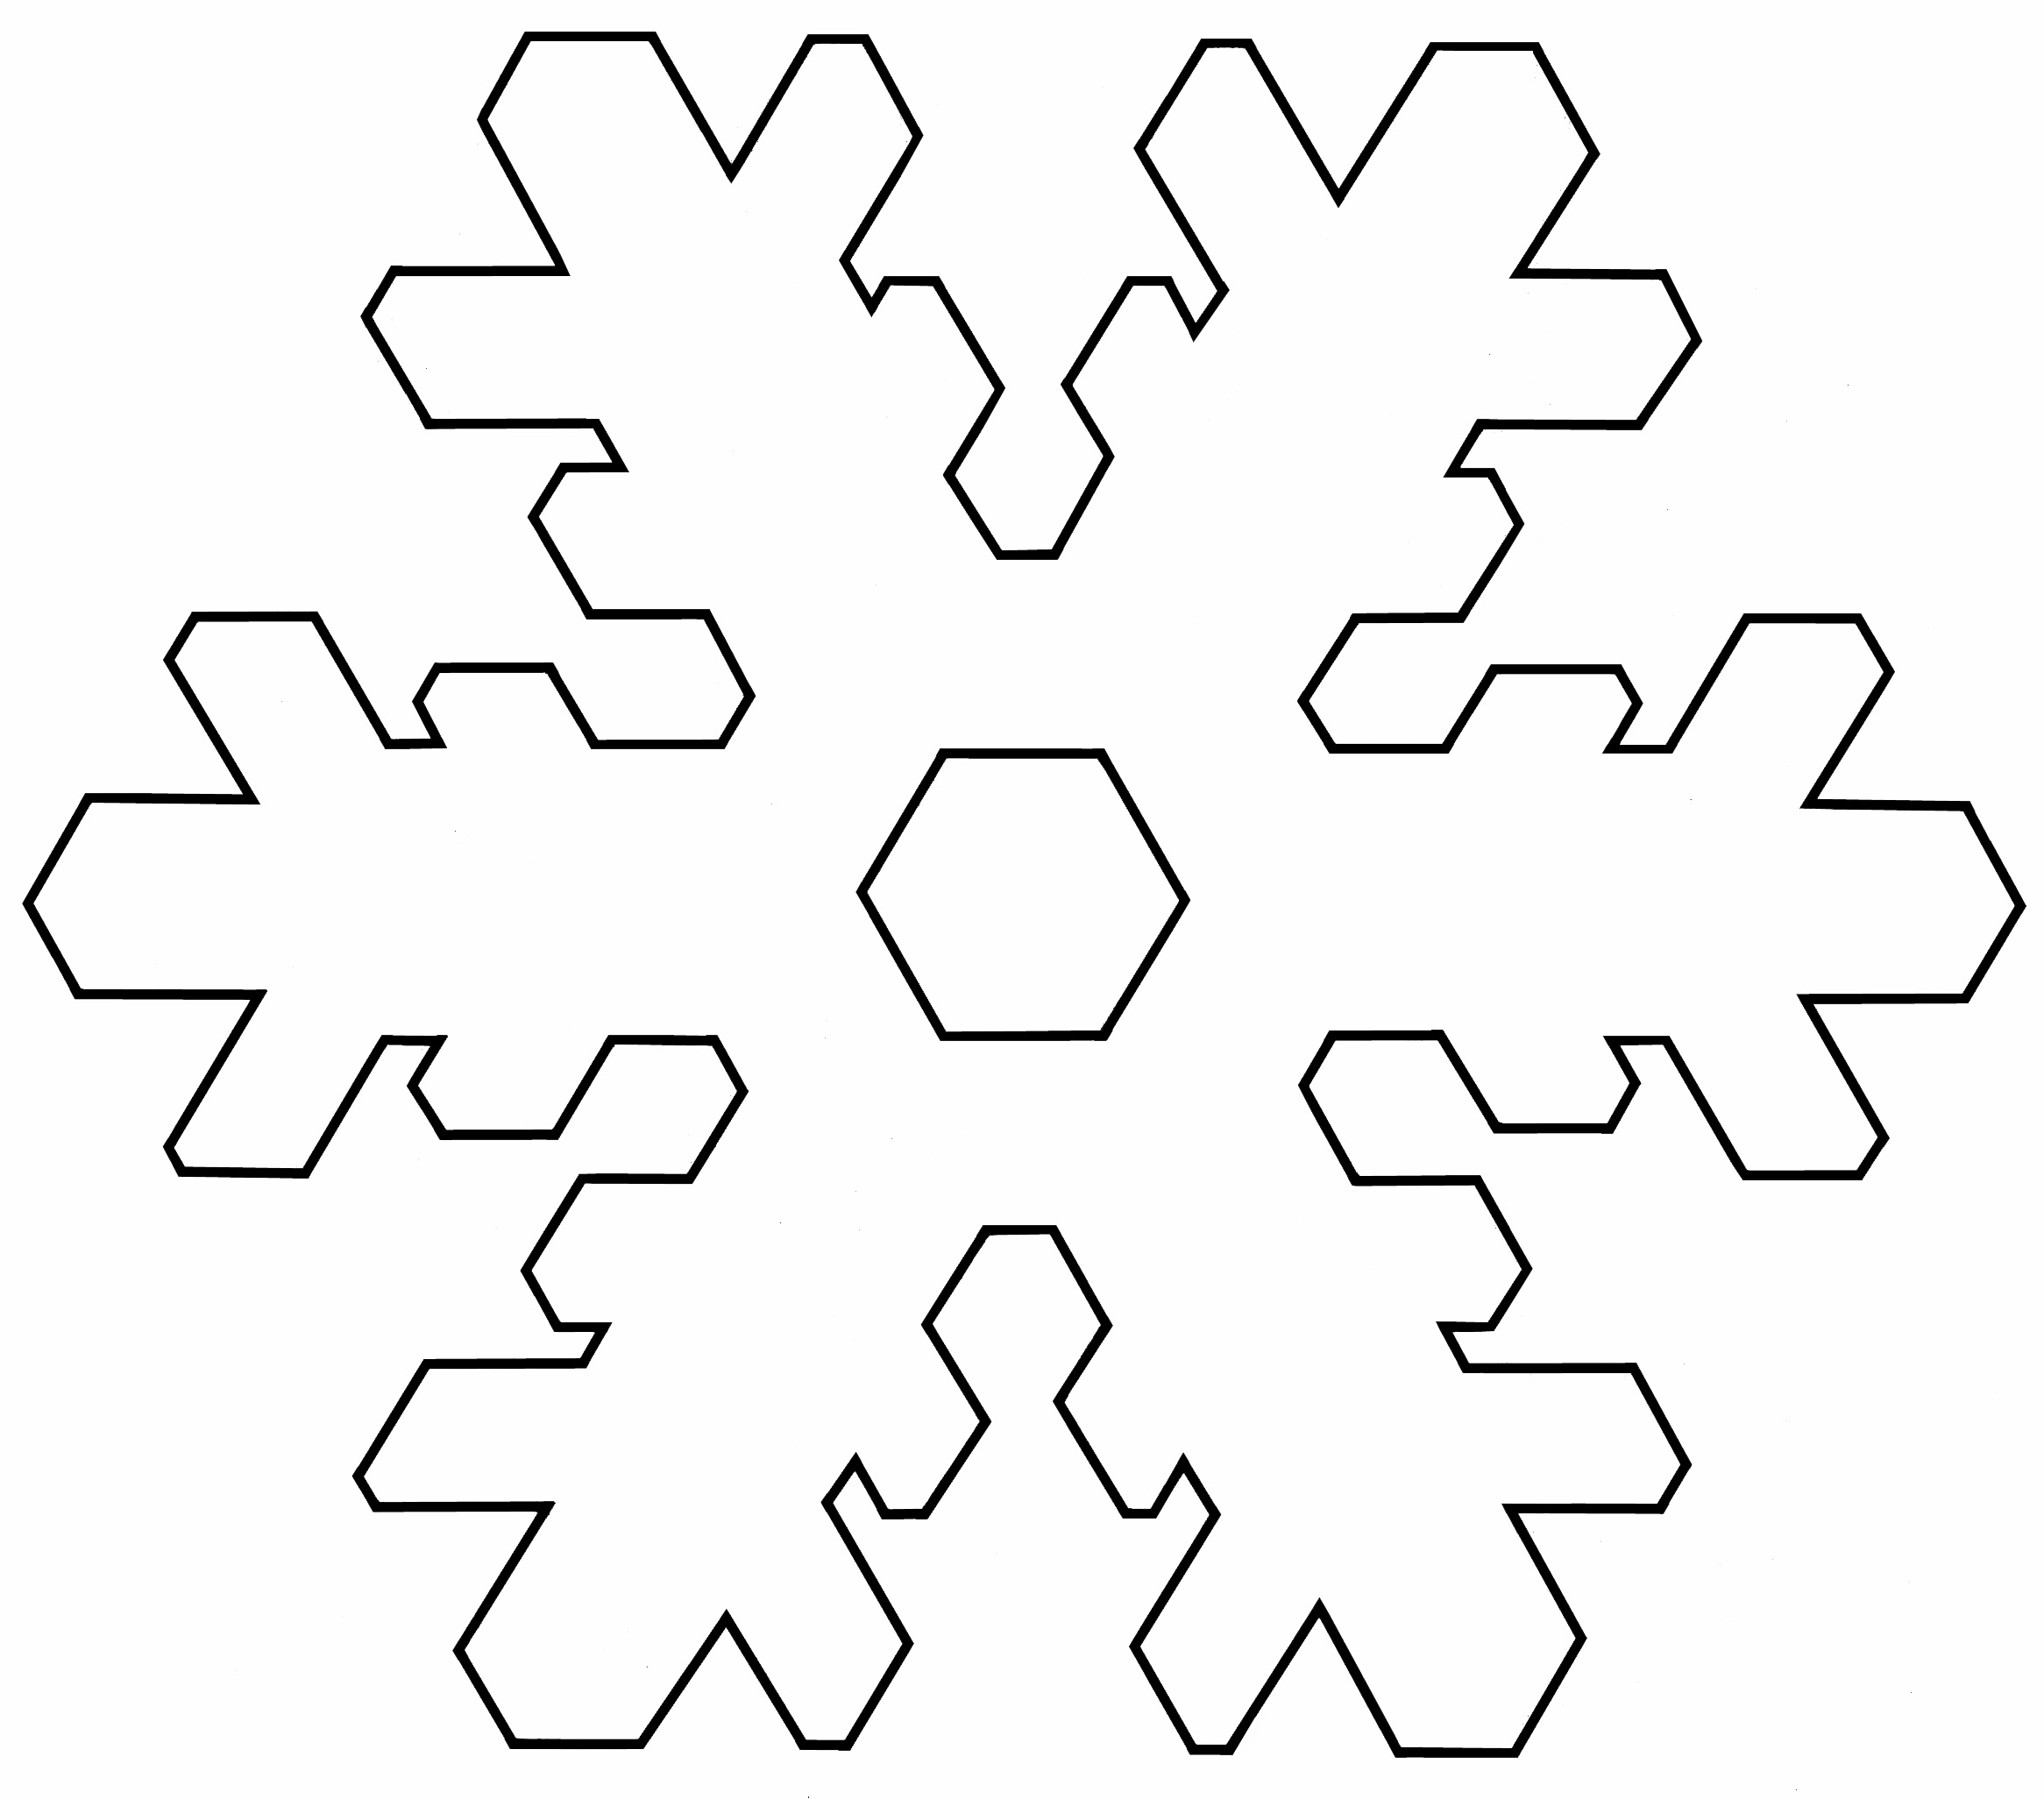 460774605604510377 furthermore Printable Letter Stencils also Writing Gods Name moreover Snowflakes nano at its coolest additionally Tahun 1 English. on words for letter e